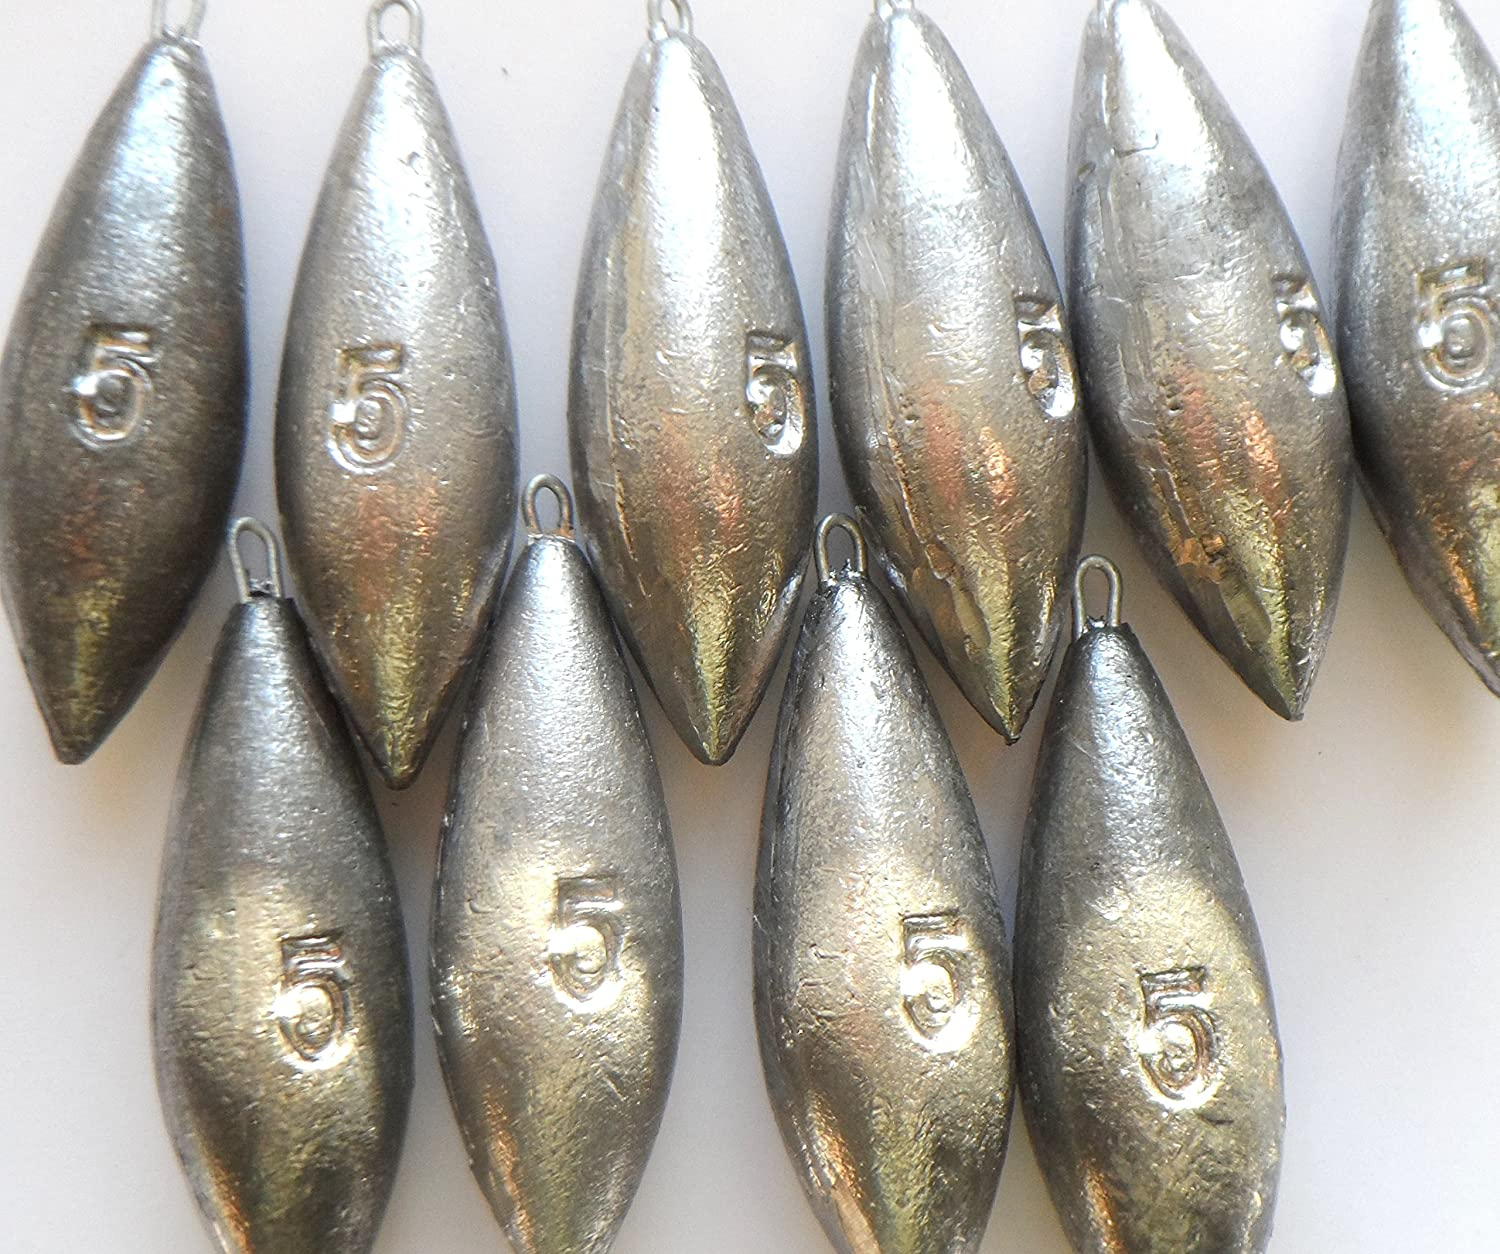 5 x 5oz and 5 x 6oz bomb weights for sea fishing